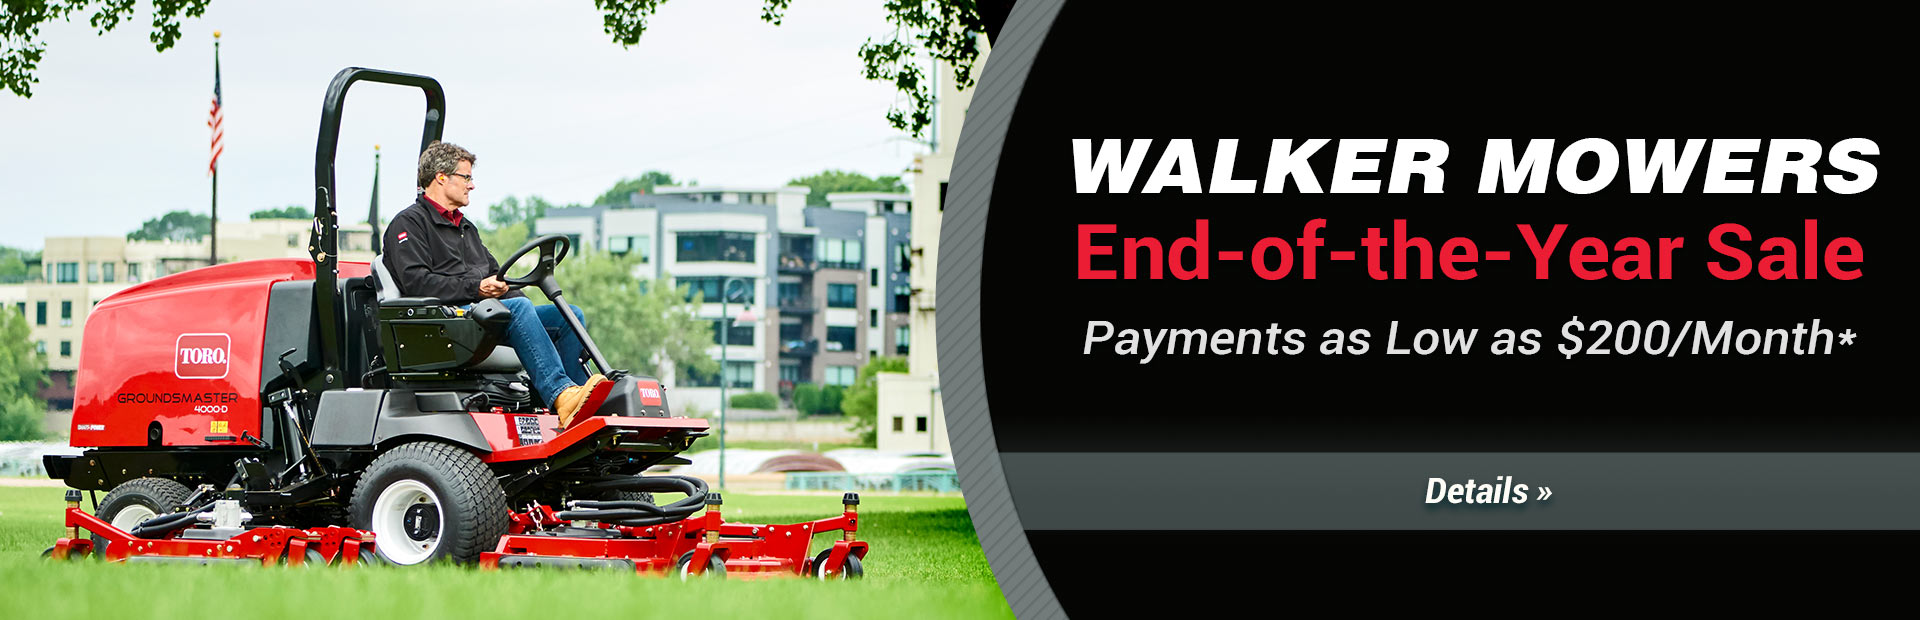 Walker Mowers End-of-the-Year Sale: Click here for details.